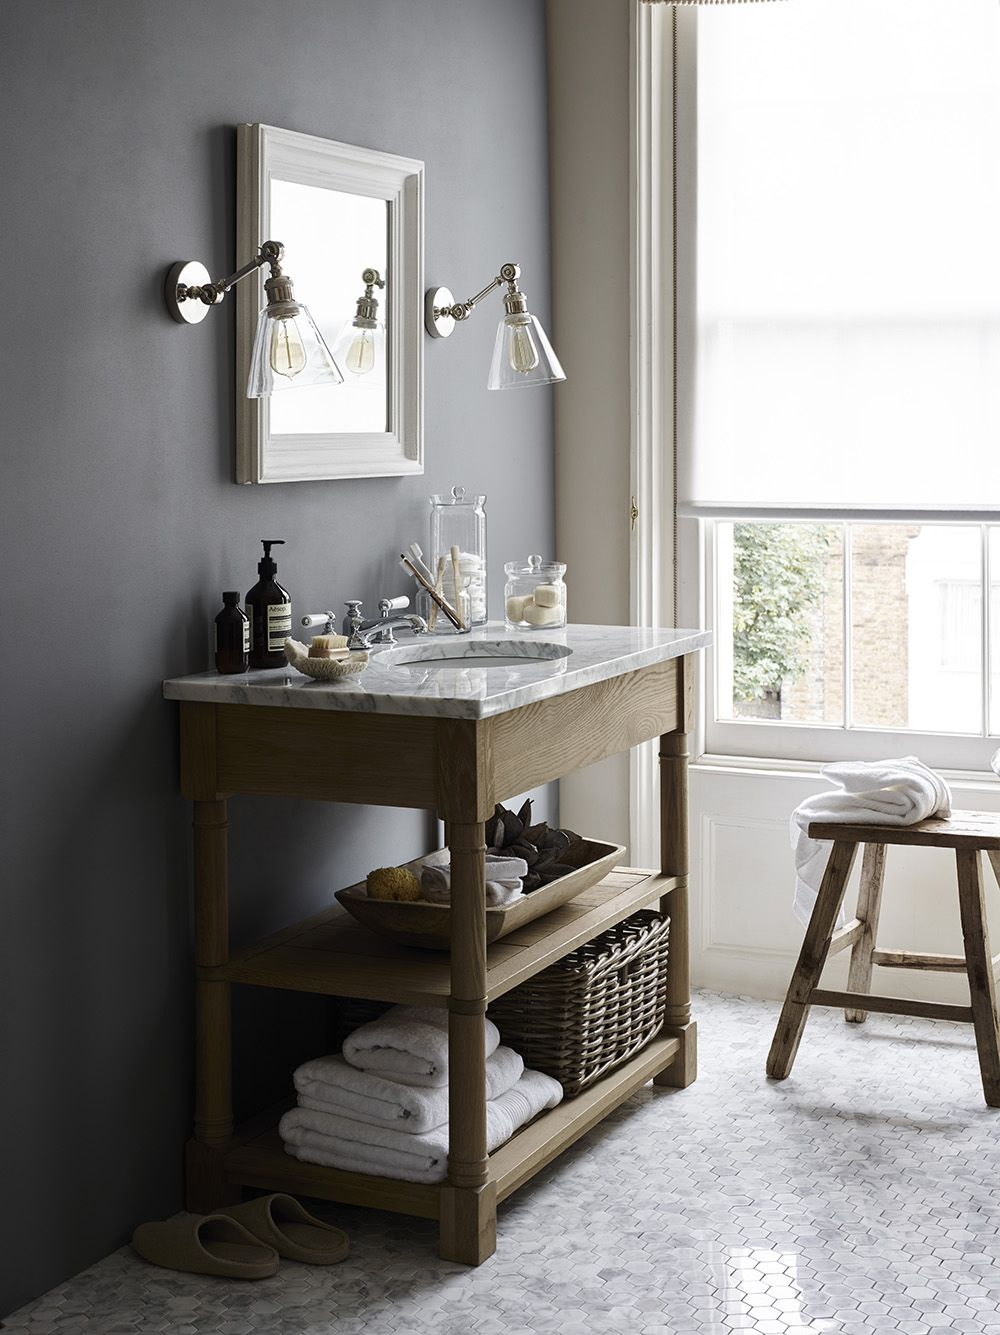 Bathroom Mirrors Edinburgh edinburgh washstand, carrar marble vanity top. buckingham square